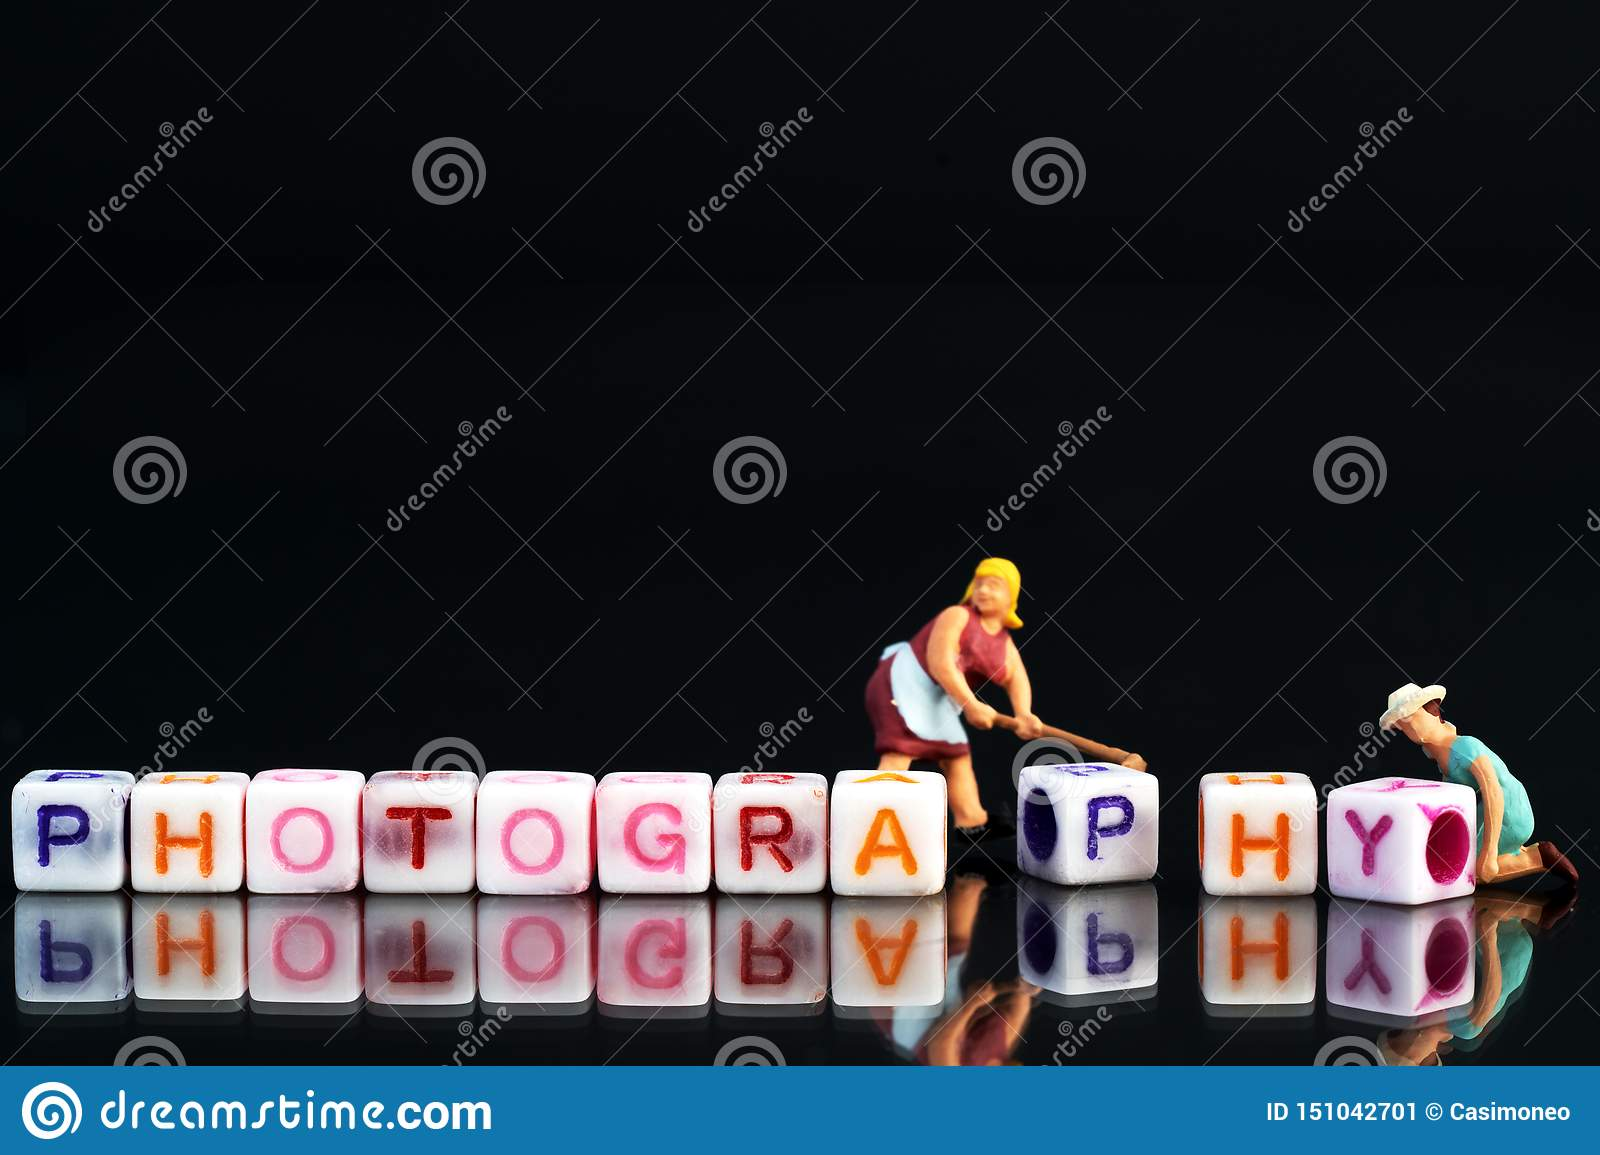 Miniature figurine woman fixing adjusting a Group Of Letters forming Words Spelling